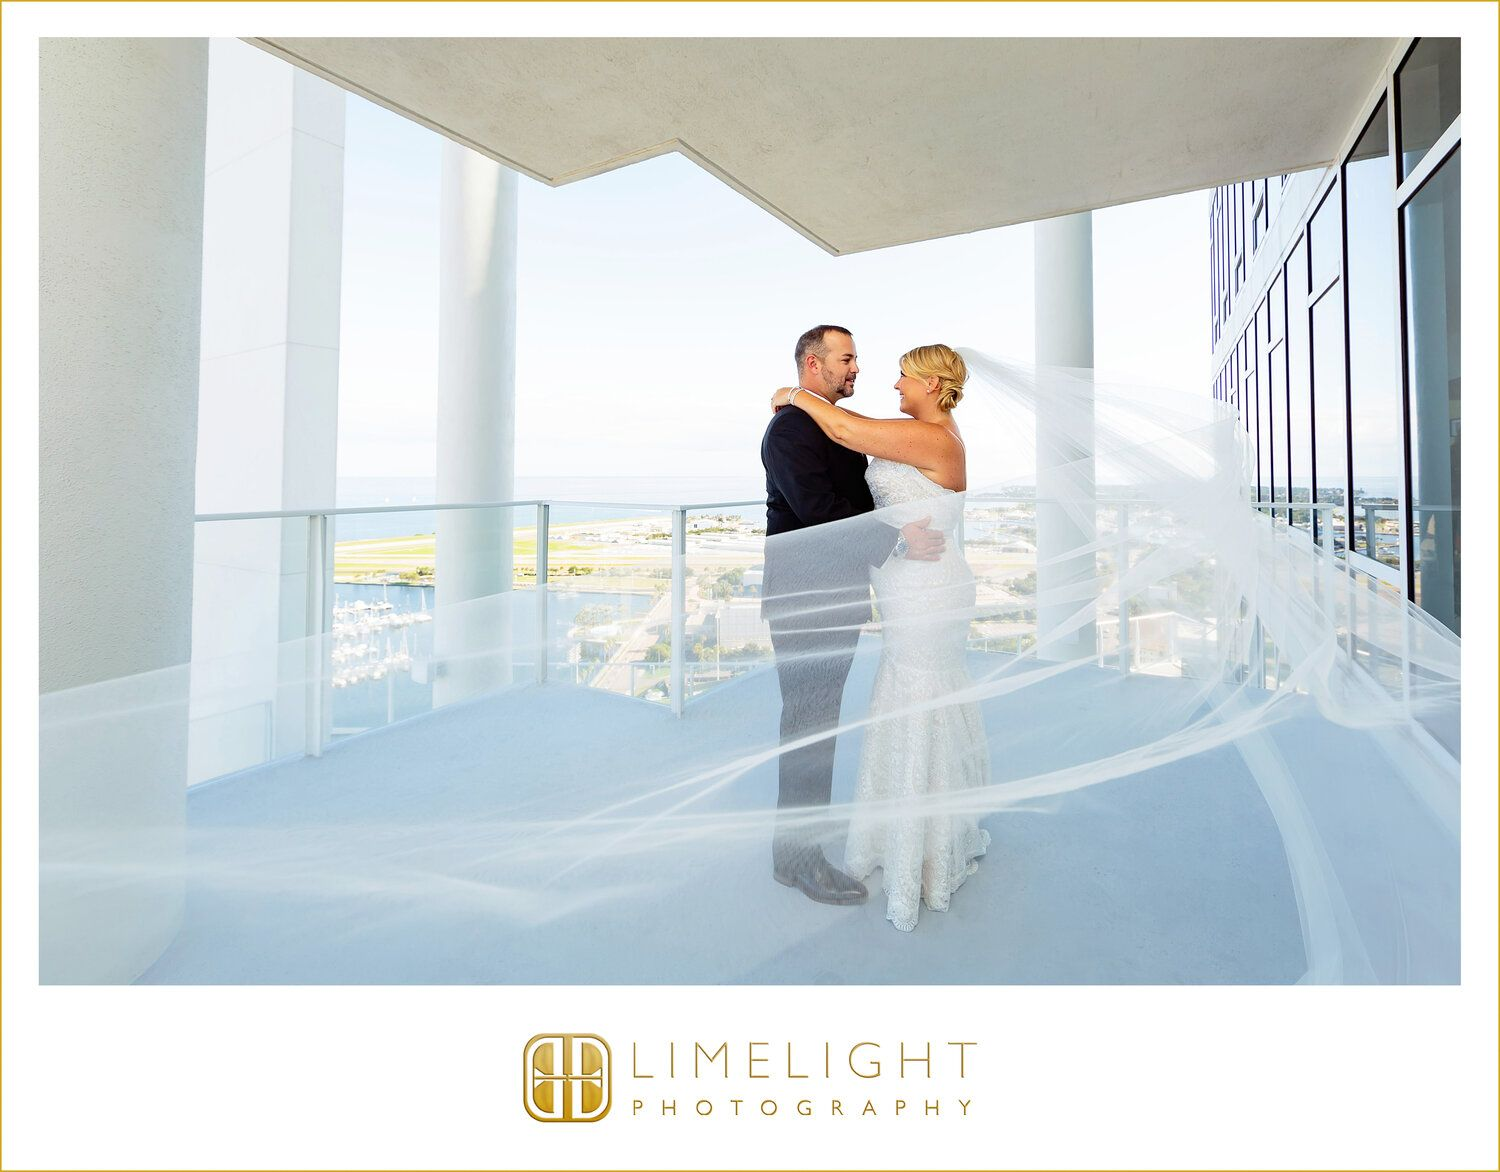 step into the limelight, limelight photography, wedding photography, museum of fine arts, mofa, st pete, st pete wedding, florida wedding, fl wedding,…